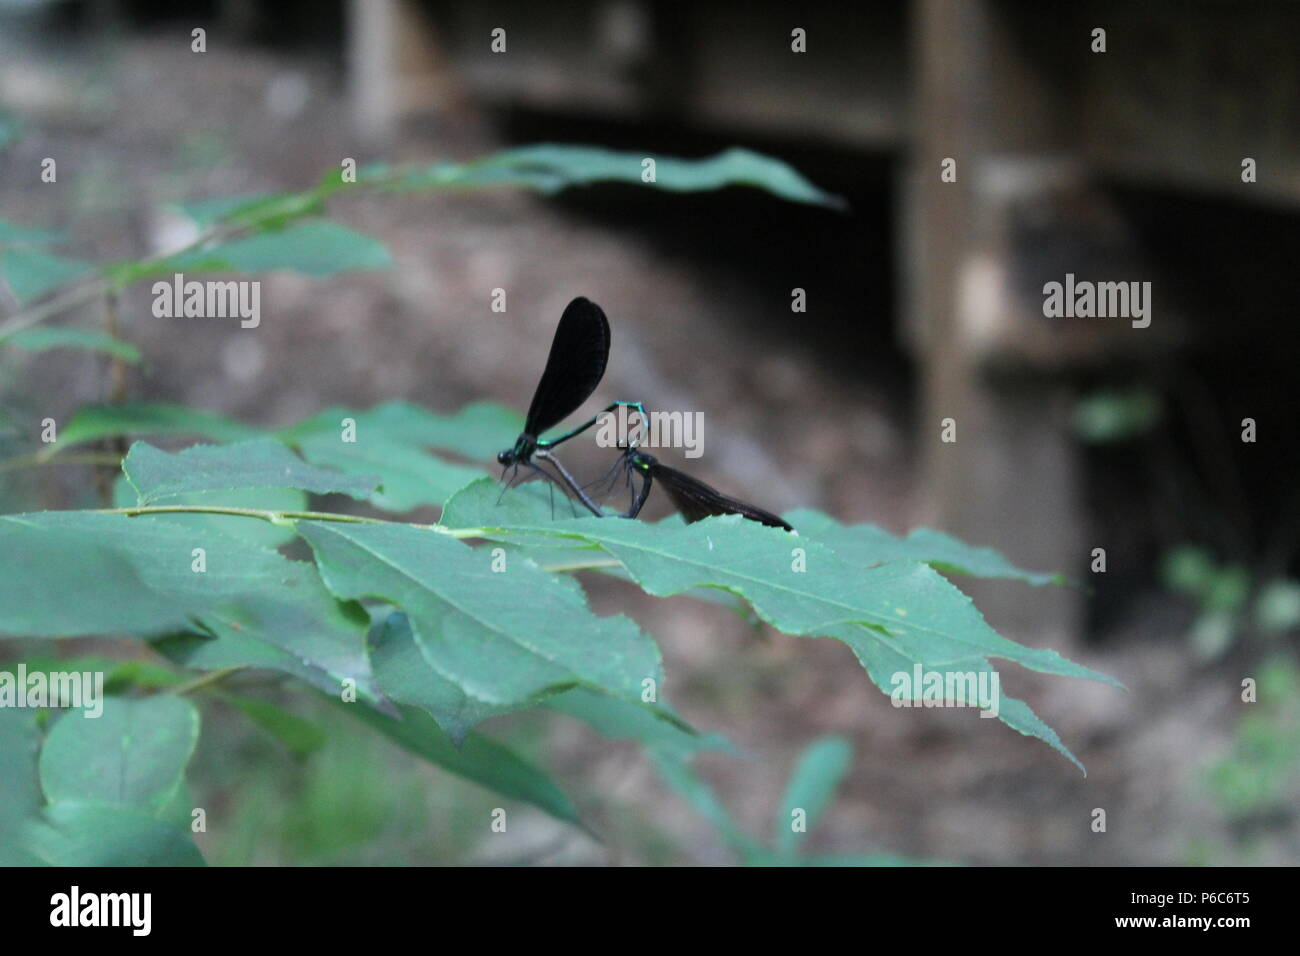 Dragonflies mating during spring time at park next to a creek - Stock Image